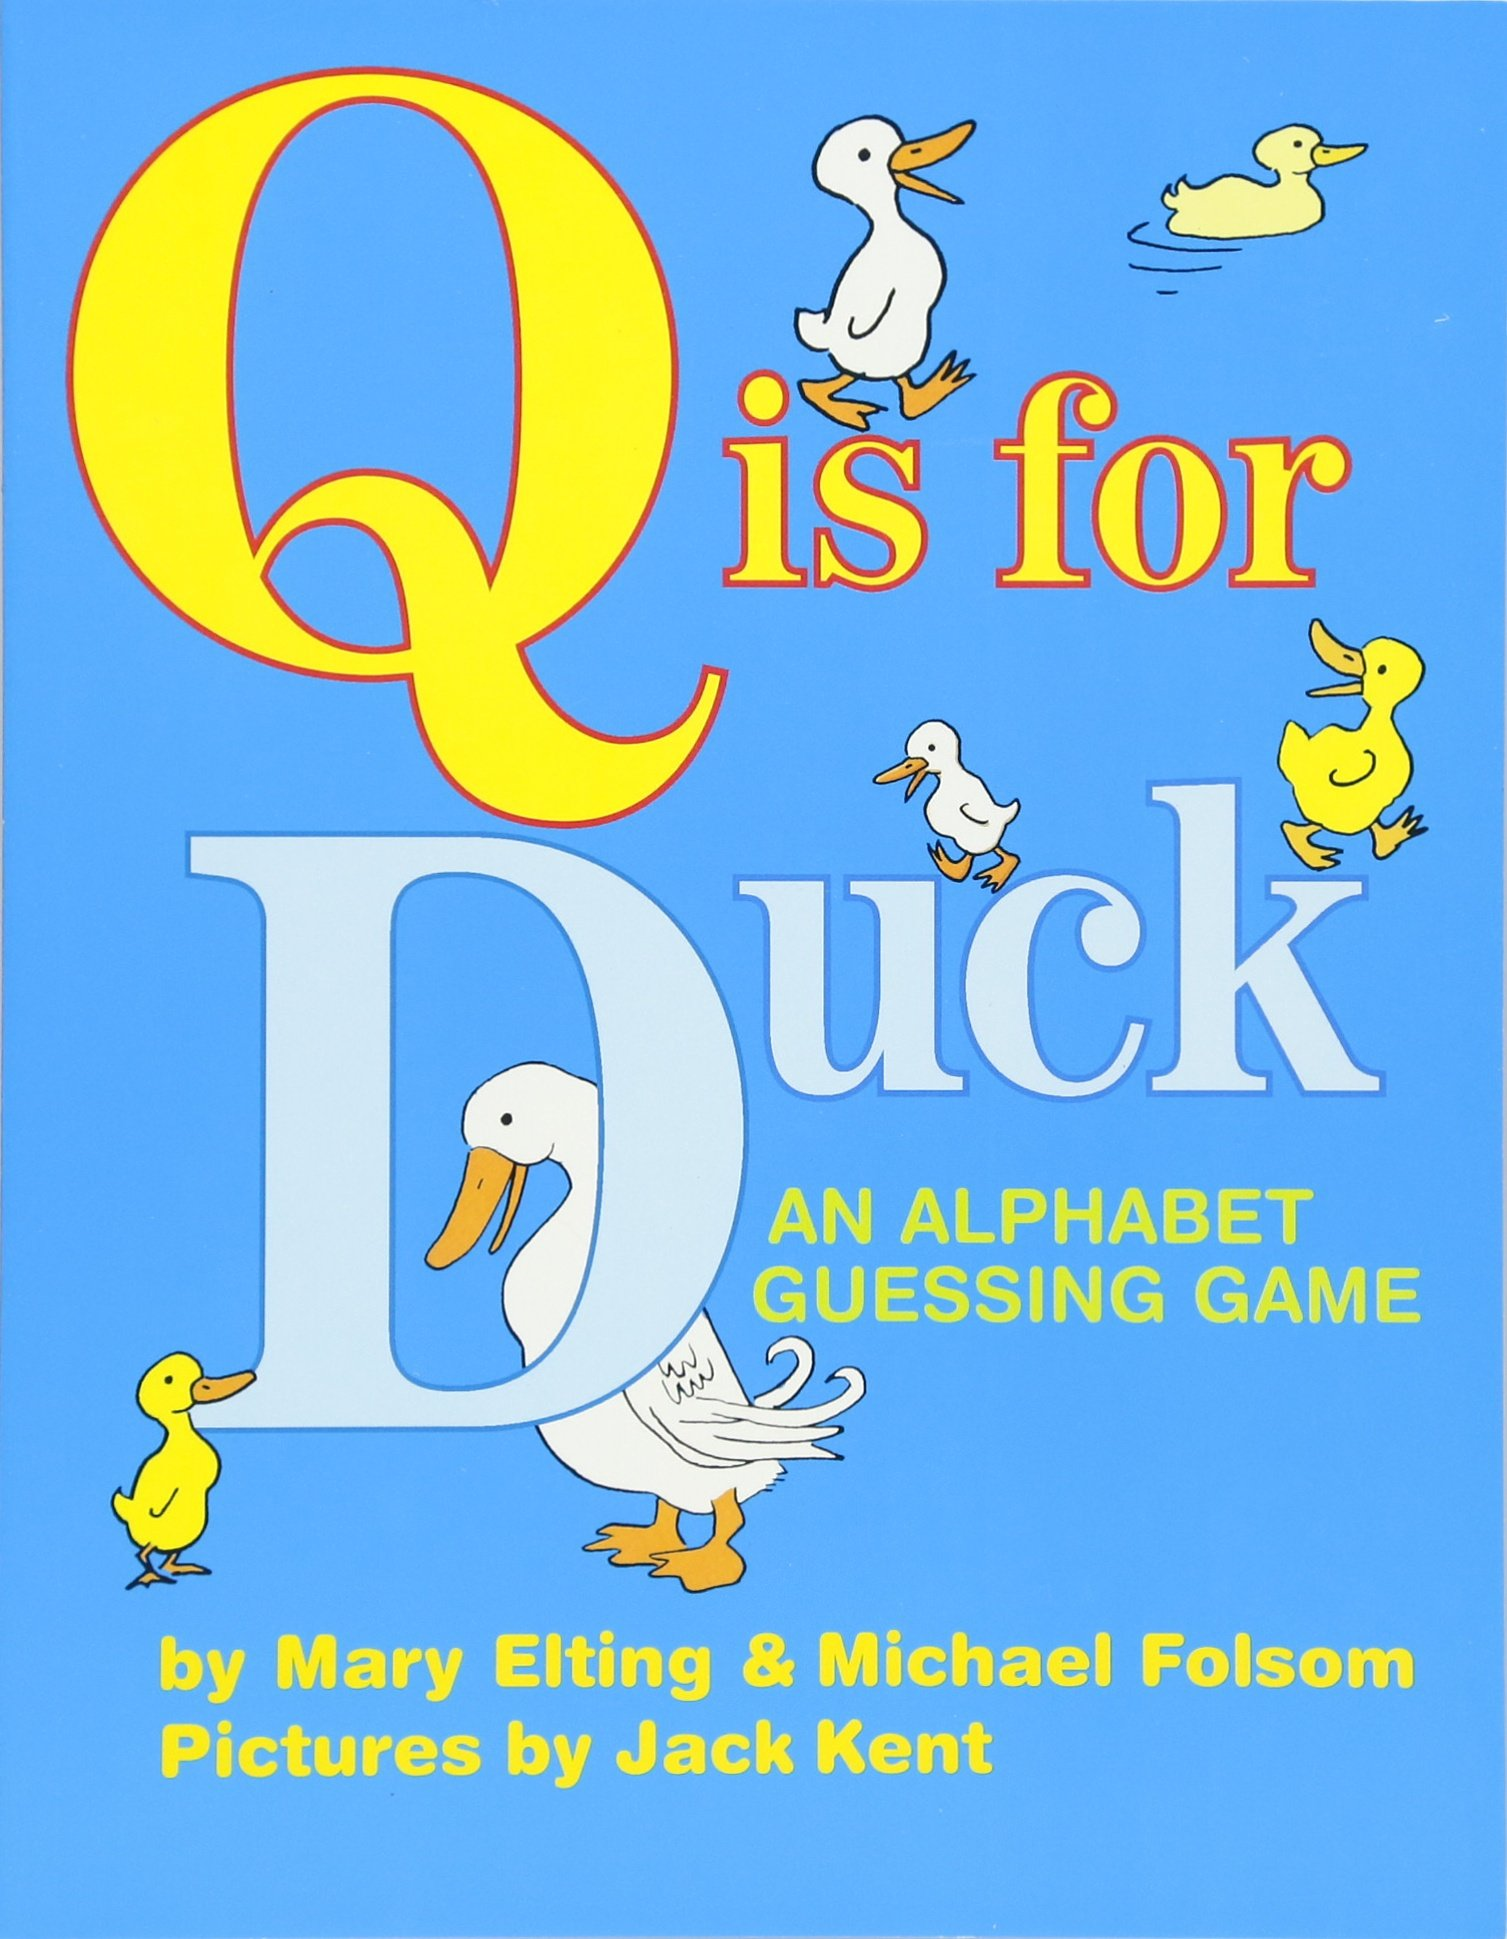 Amazon.com: Q Is for Duck: An Alphabet Guessing Game ...